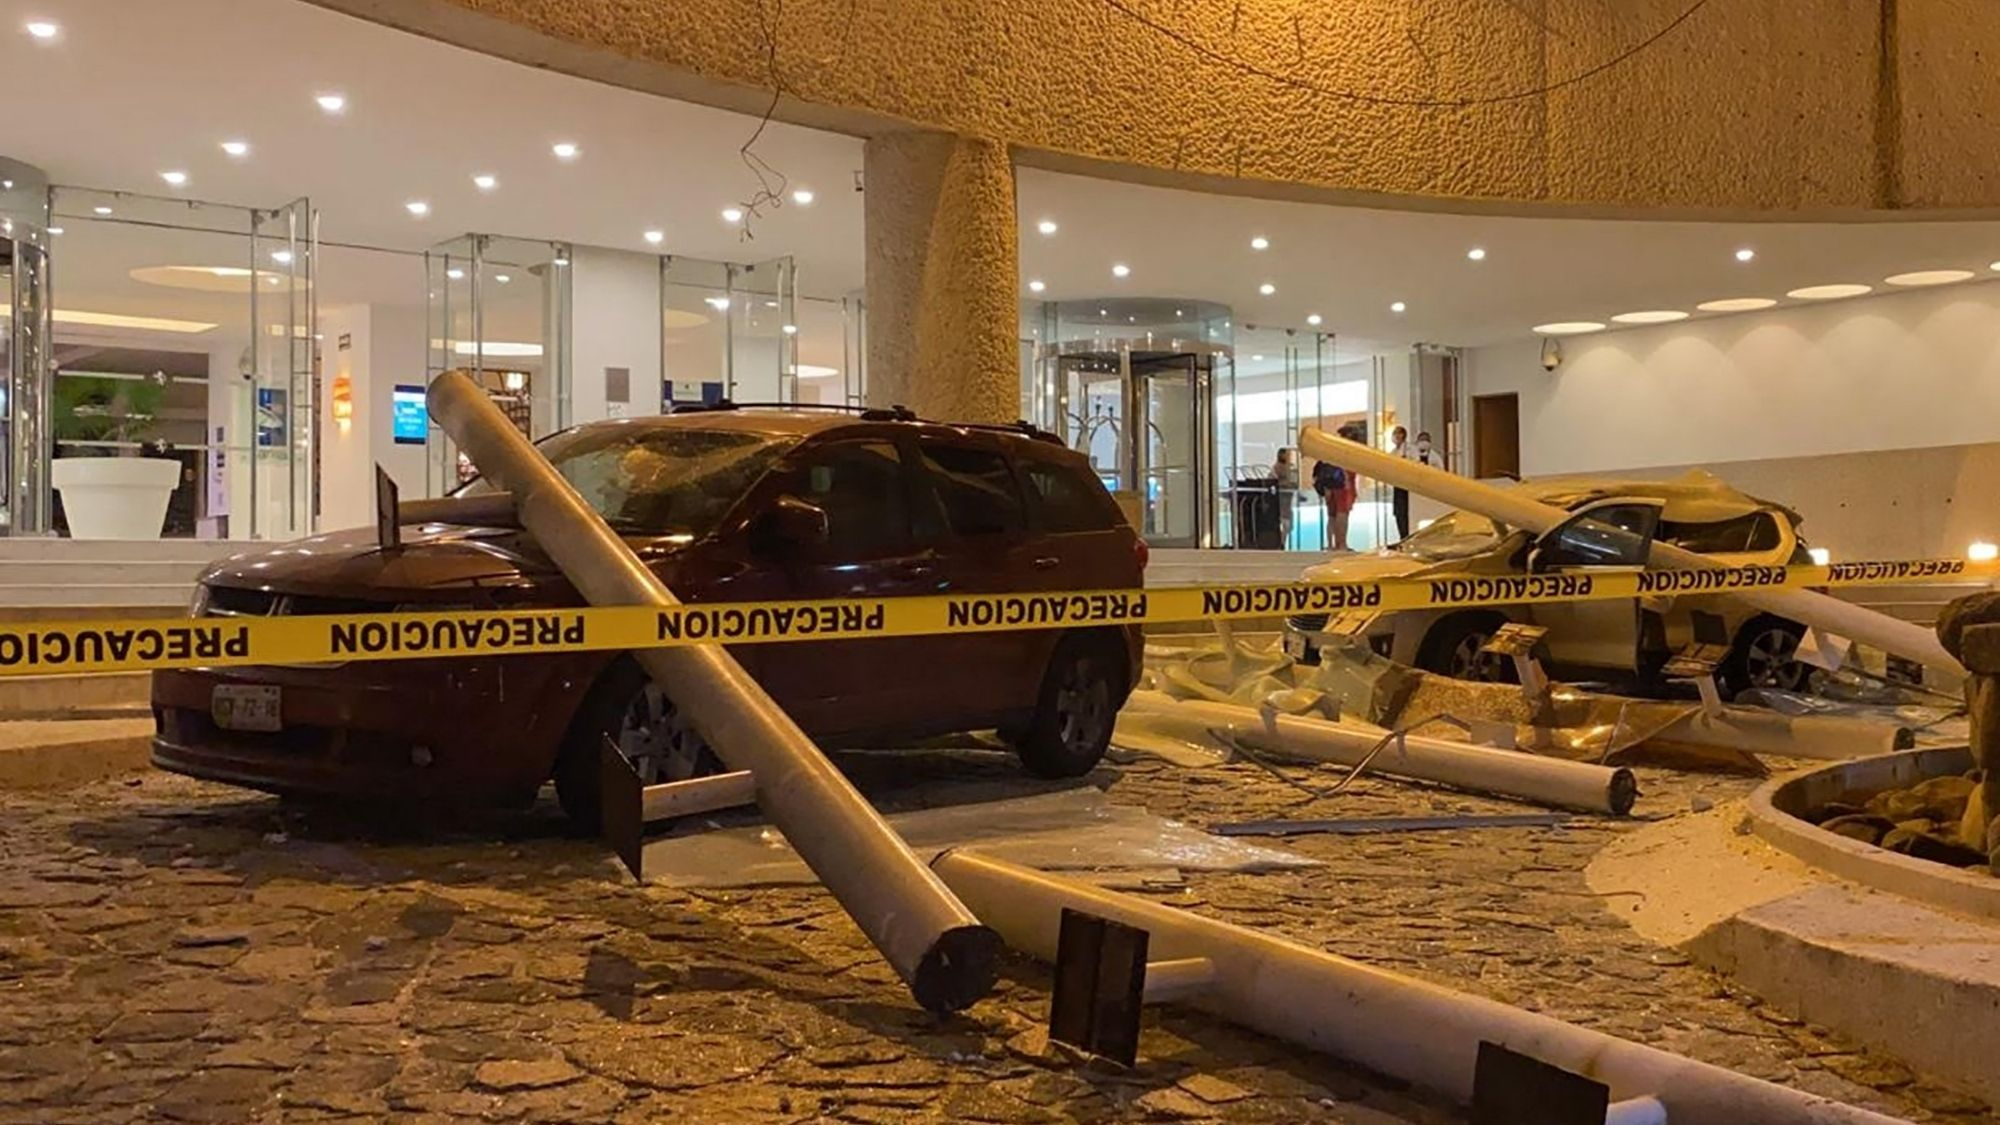 Magnitude 7.0 quake hits Mexico, no serious damage reported photo from Bloomberg